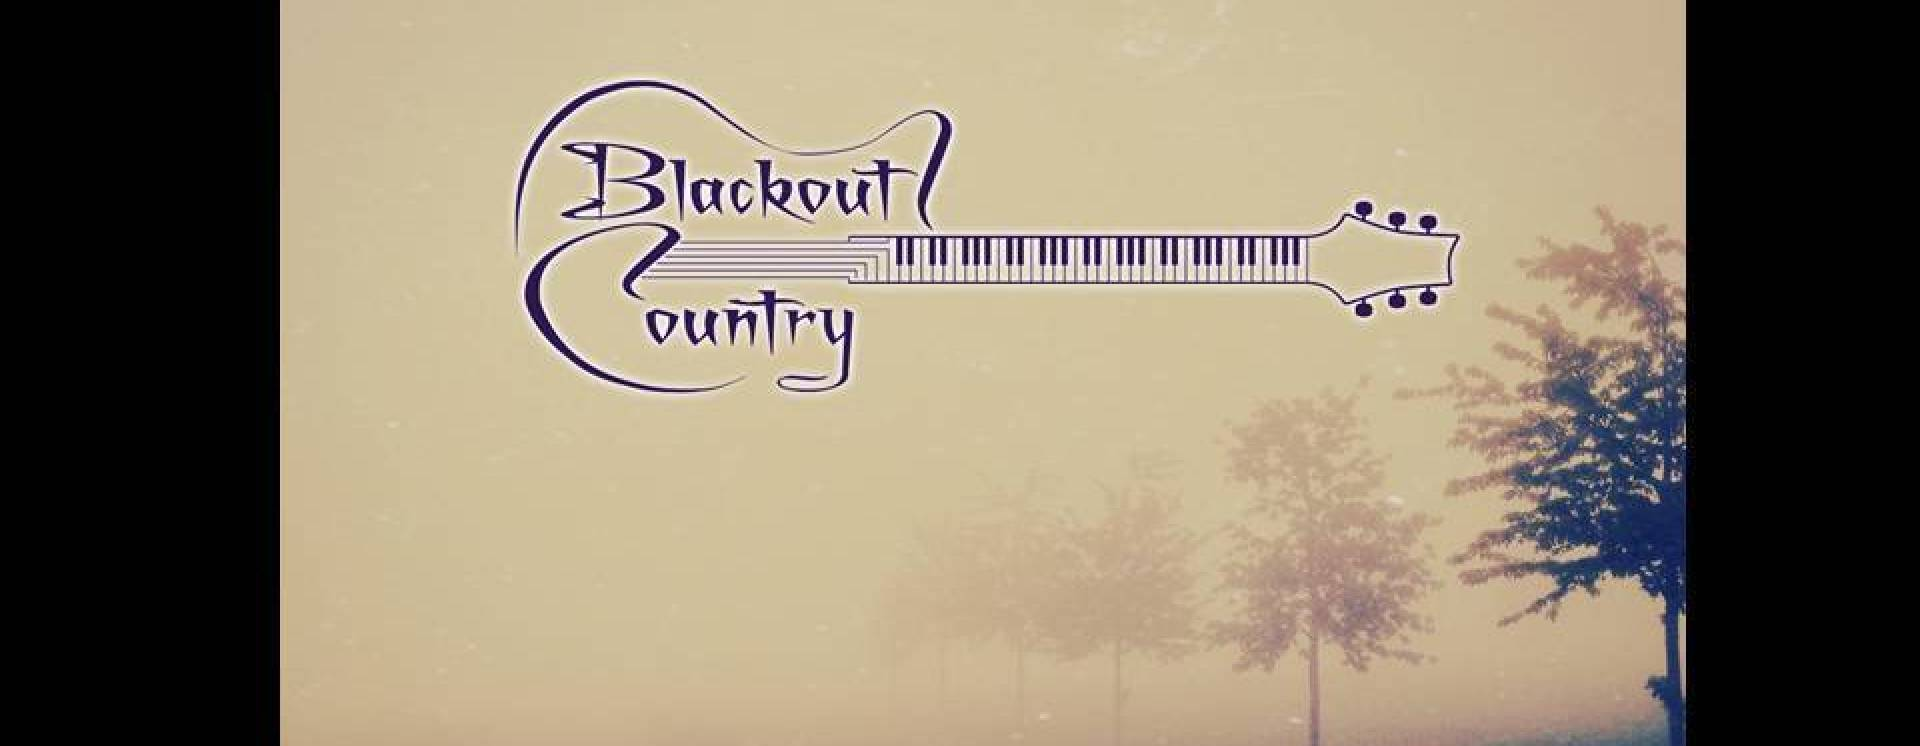 1413449933 blackout country sad eyed ghosts  rn  copy